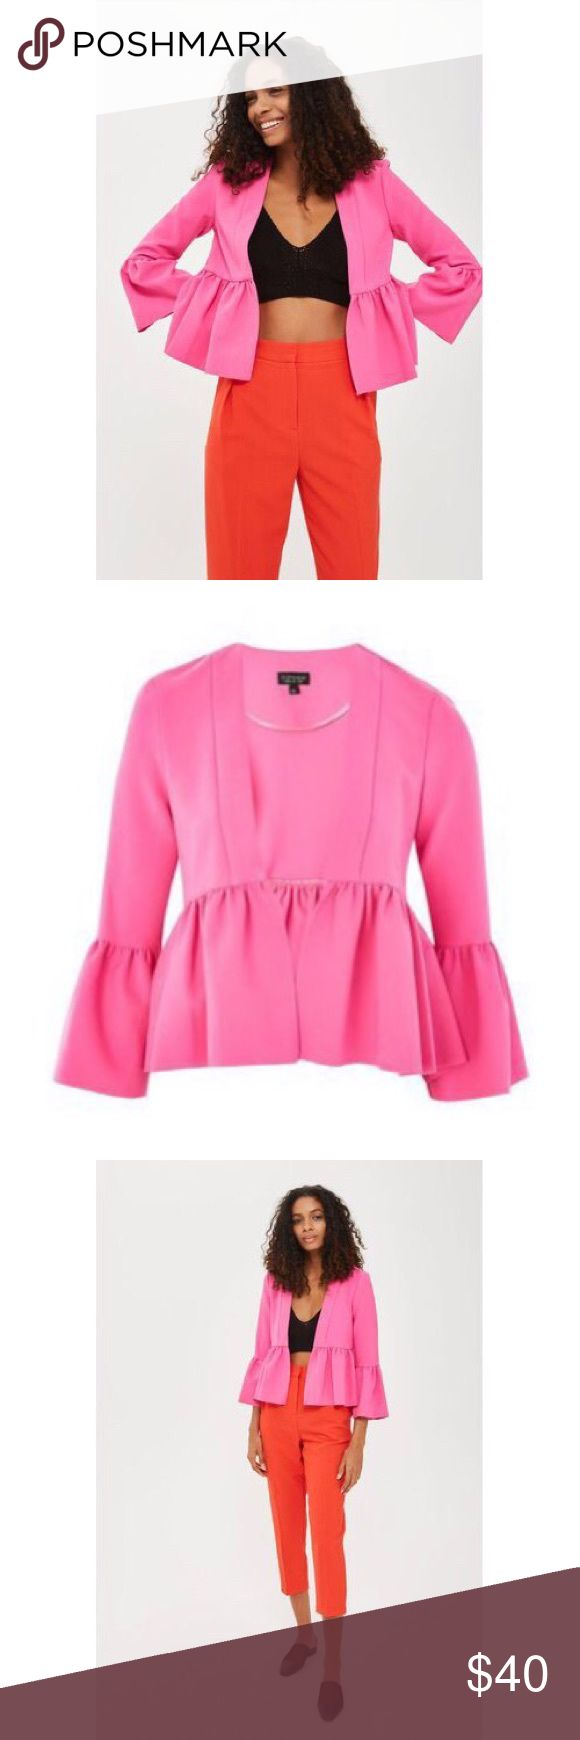 TOPSHOP Hot Pink Crop Frill Ruffle Cropped Jacket New Without Tags! TOPSHOP Hot Pink Crop Frill Bell Sleeve Cropped Jacket  US Size 0 UK Size 4 Jazz up your outerwear with our directional pink frill jacket.  This structured style boasts an open front and extravagant peplum frills to the sleeve and hem.  Piece together a party look by introducing a crop top and colour-pop crops to the mix.  Material: 93% Polyester, 7% Elastane. Dry clean only.  Color: pink Sold Out In All Stores And Online…